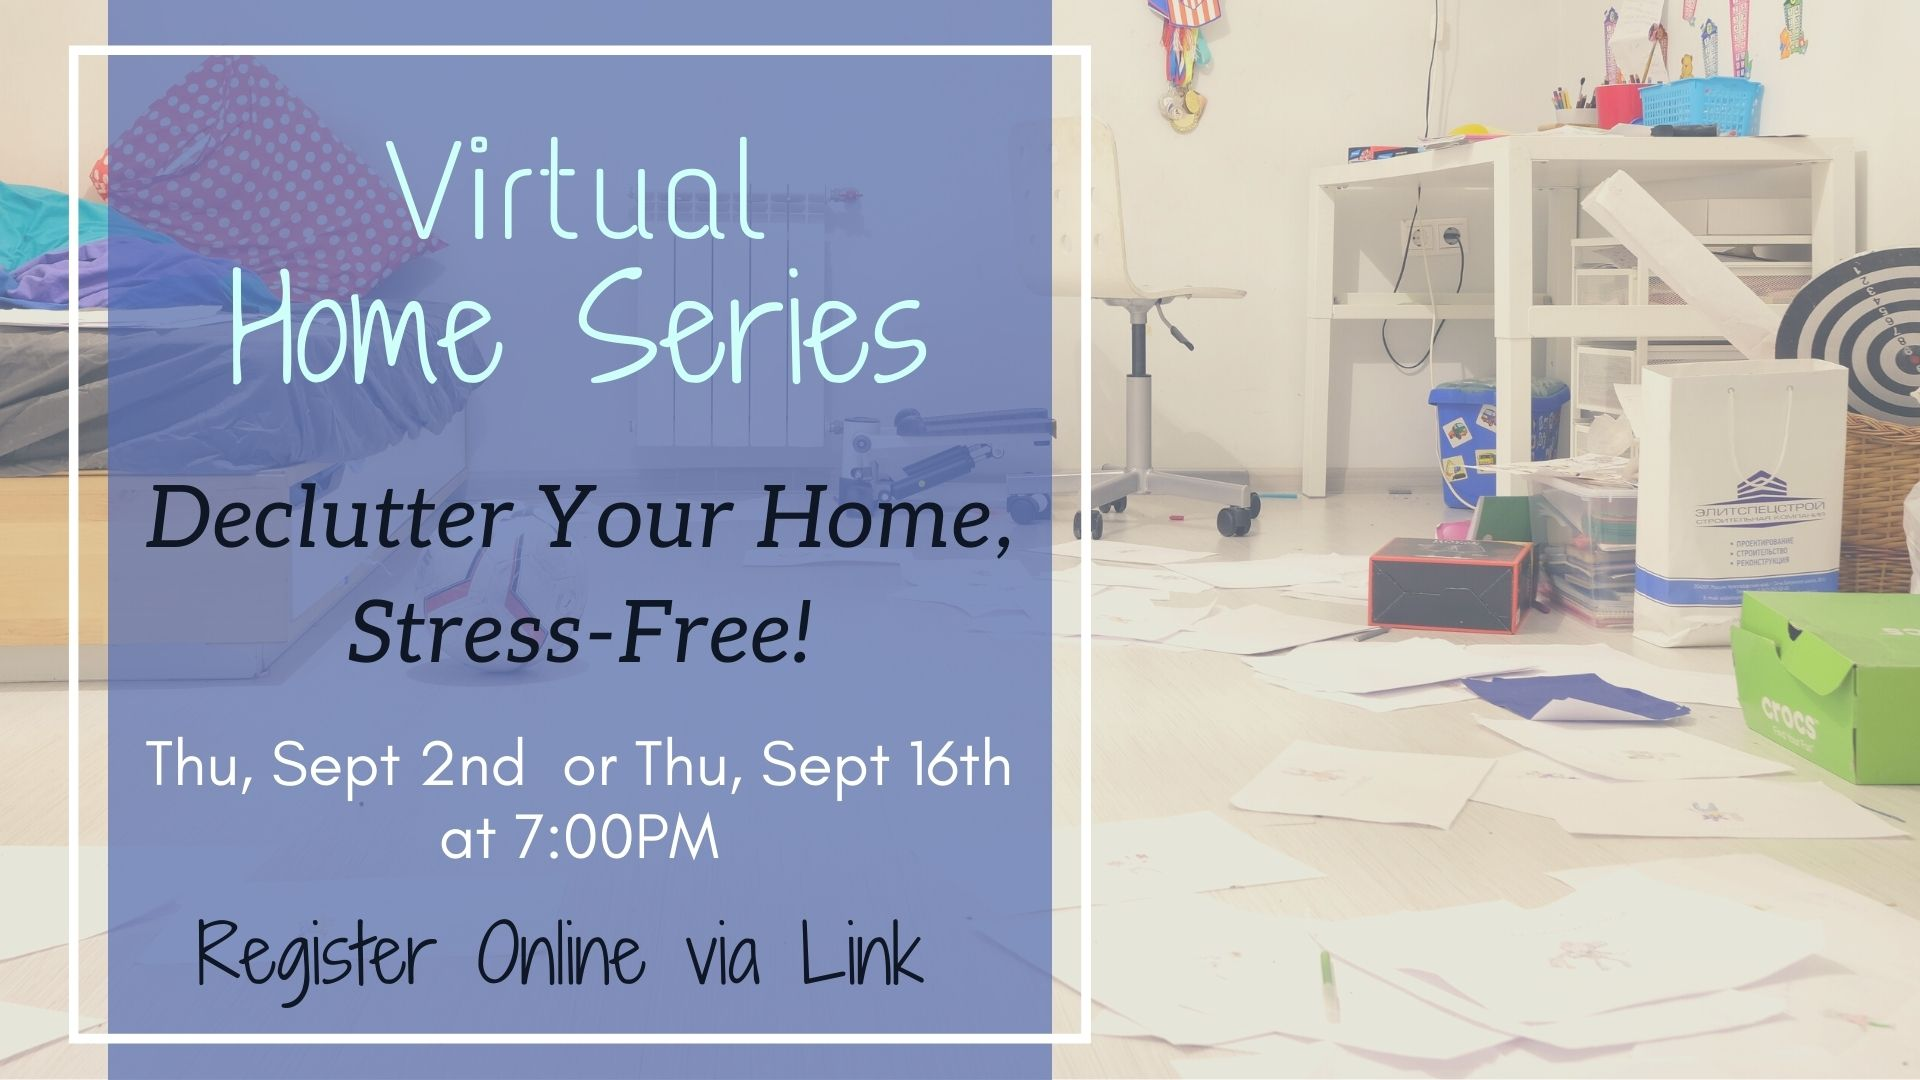 Home Series: Declutter Your Home, Stress-Free!